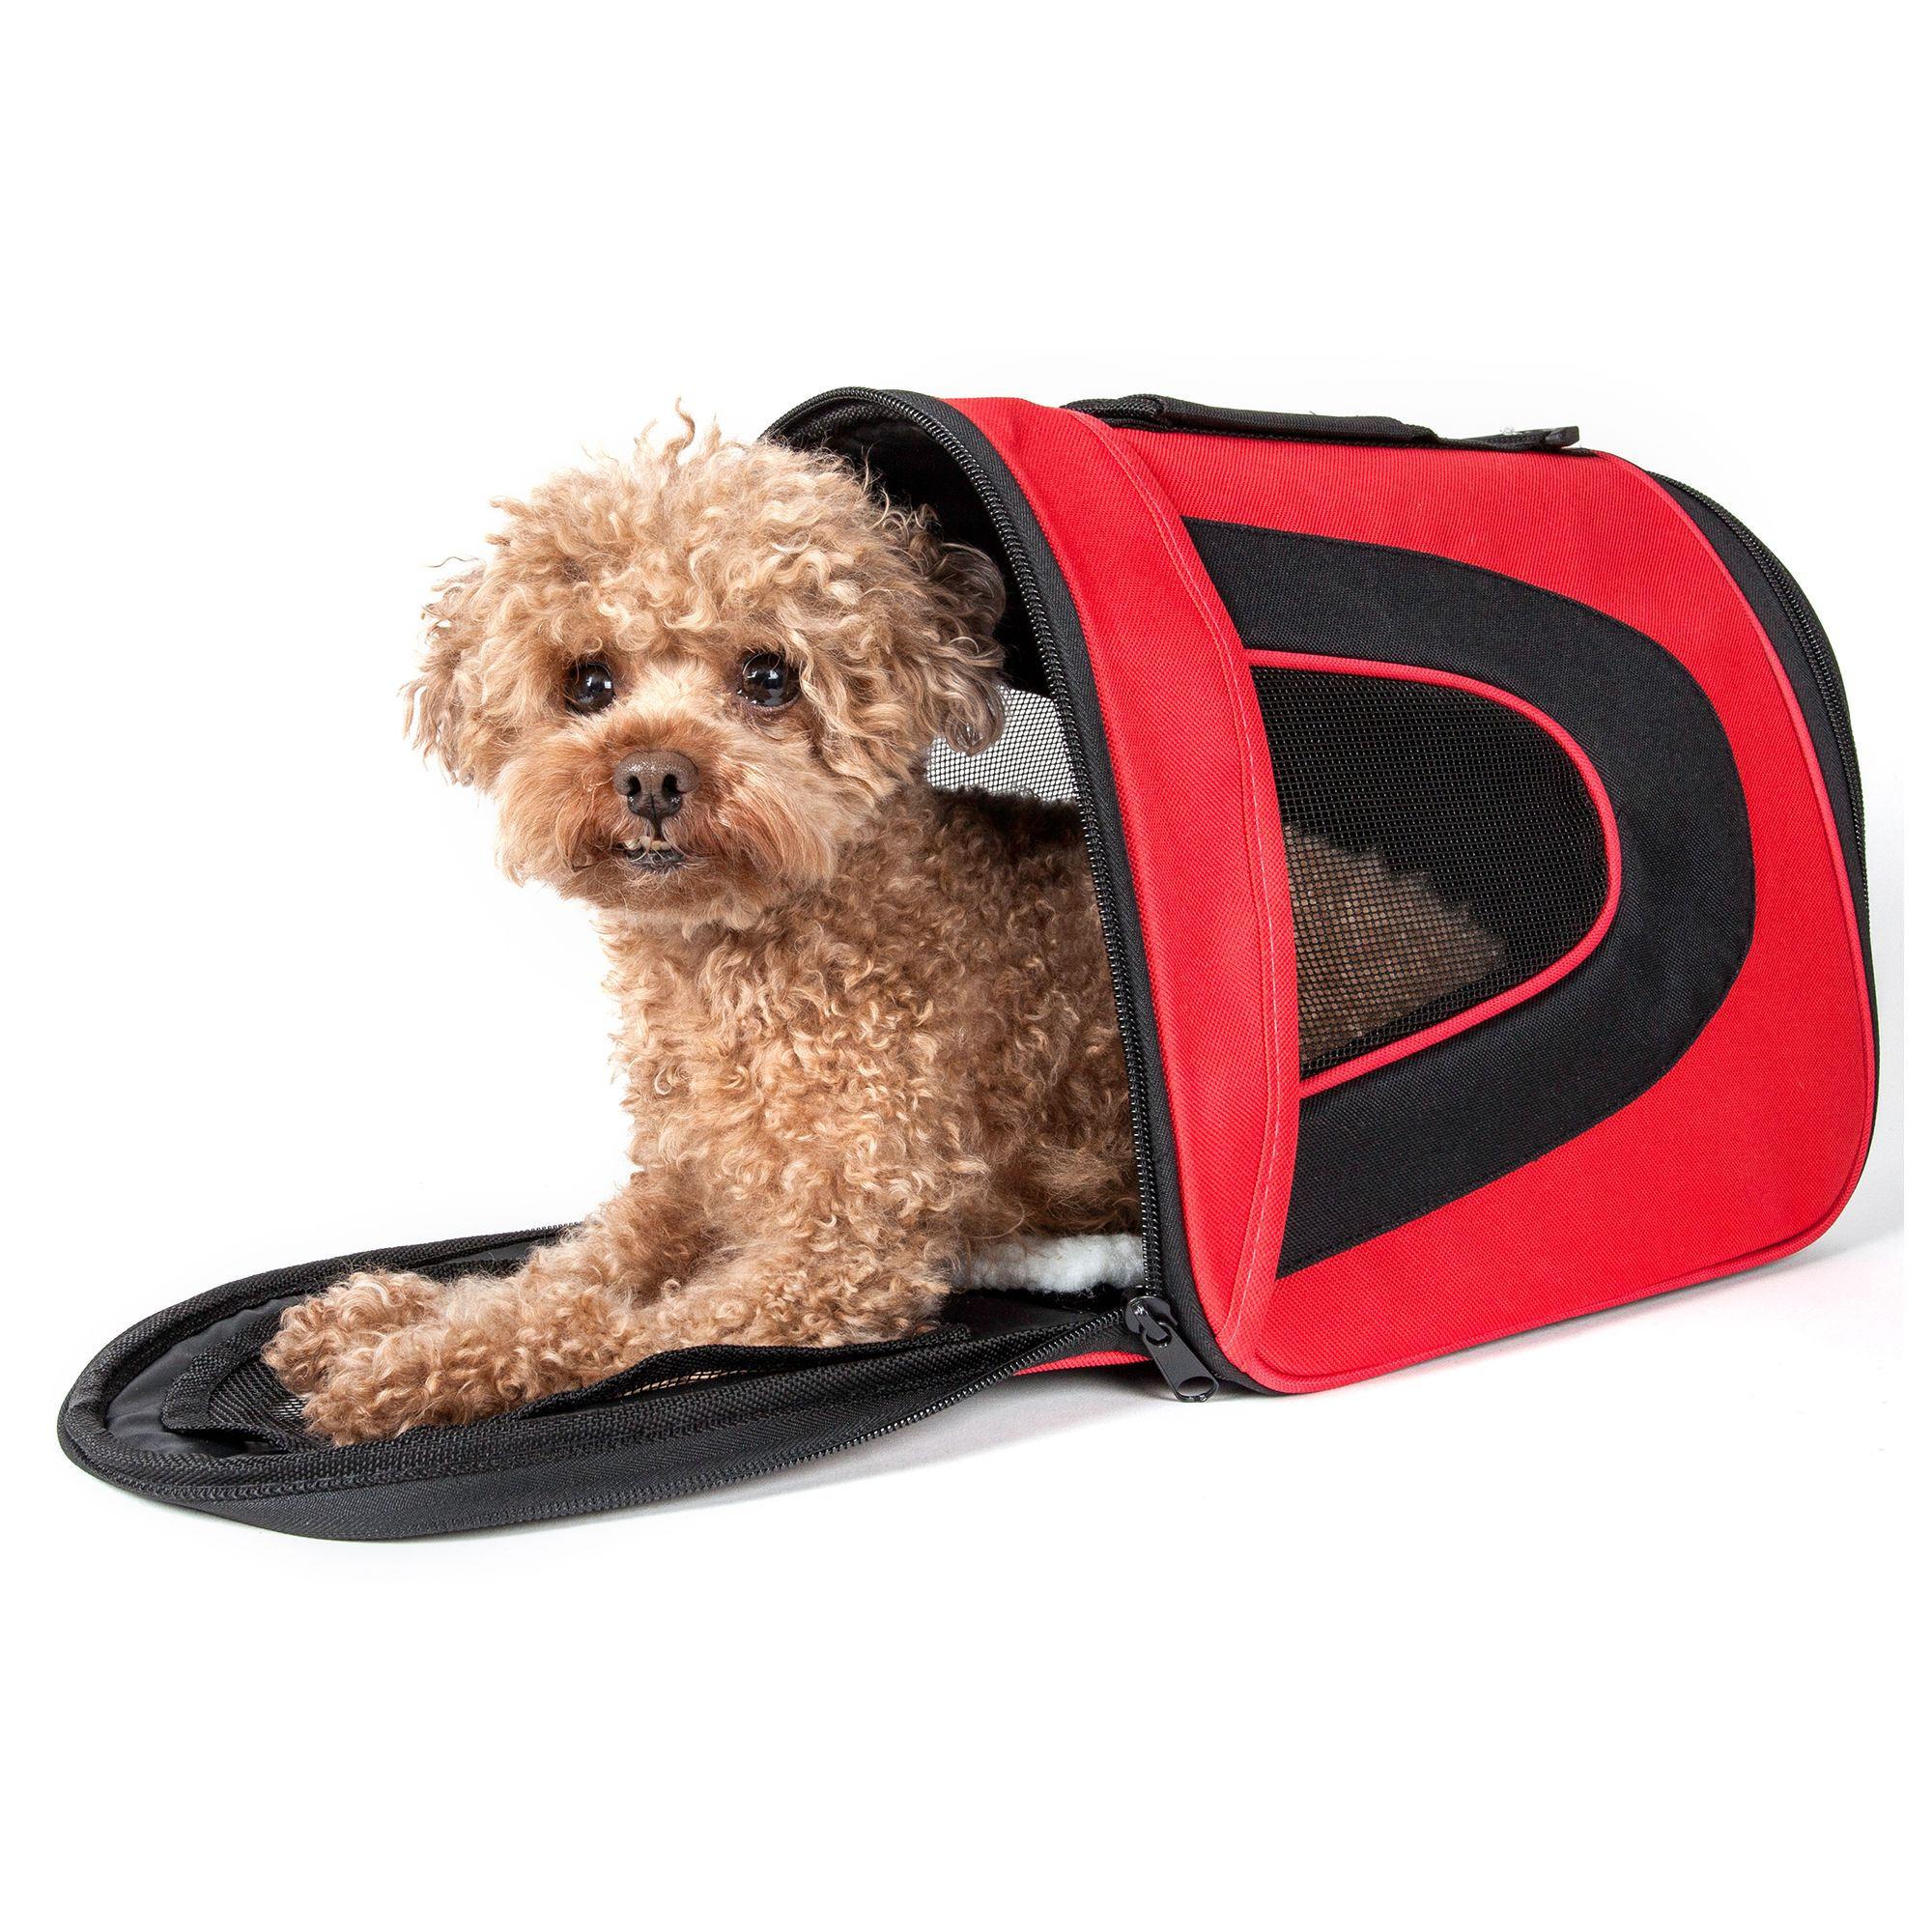 Pet Life Airline Approved Folding Sporty Mesh Pet Carrier Size 16.9l X 10.2w X 9.8h Red